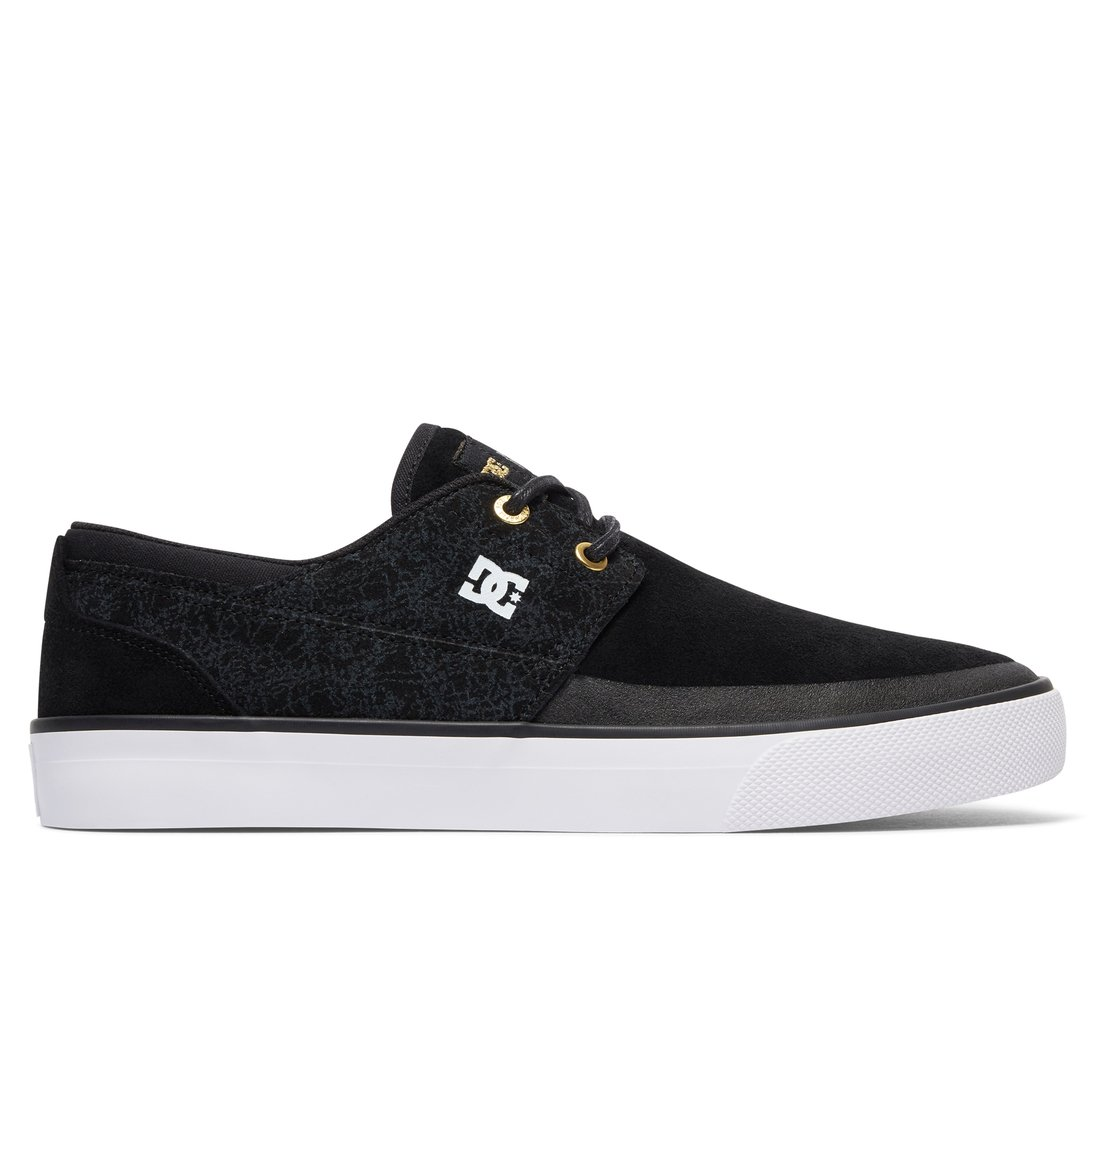 DC Shoes Chaussures Wes Kremer 2 Sk8 Mafia Chaussure Homme DC Shoes soldes FLdQSnK